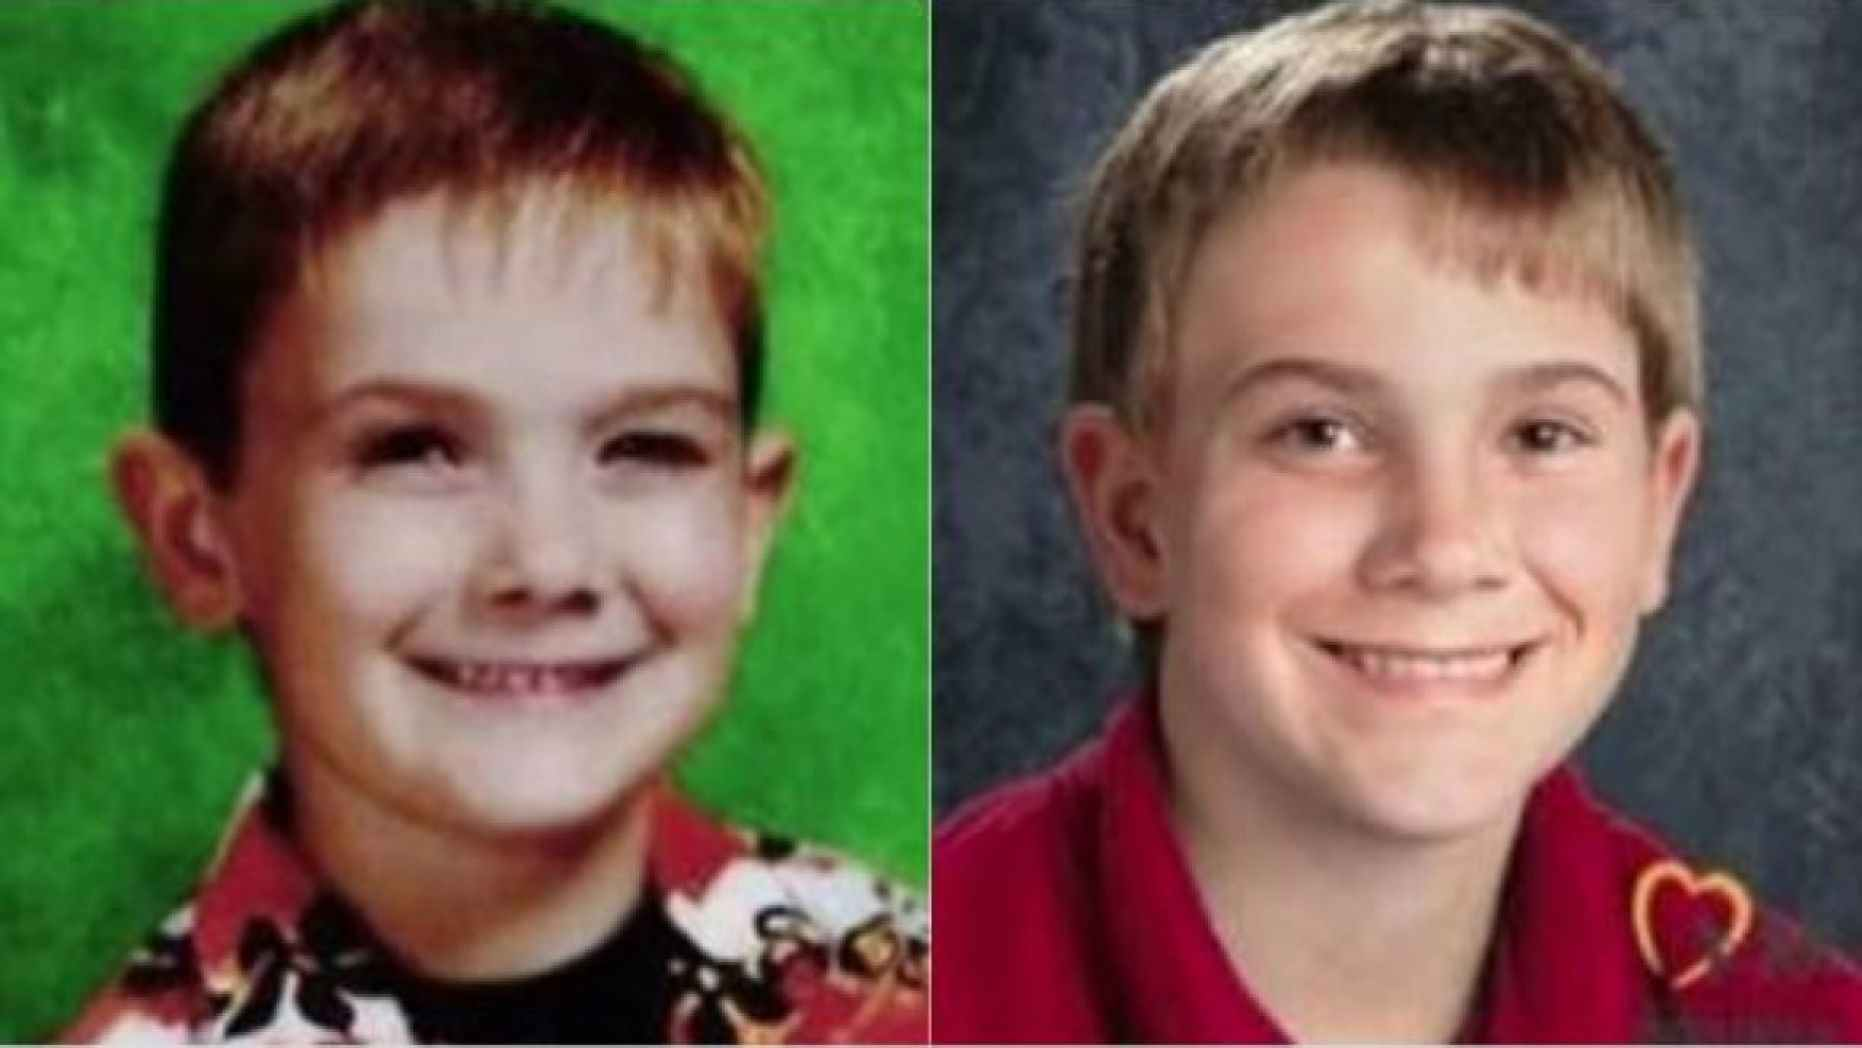 Ohio teen tells investigators hes Timmothy Pitzen, child who disappeared in Illinois in 2011: report